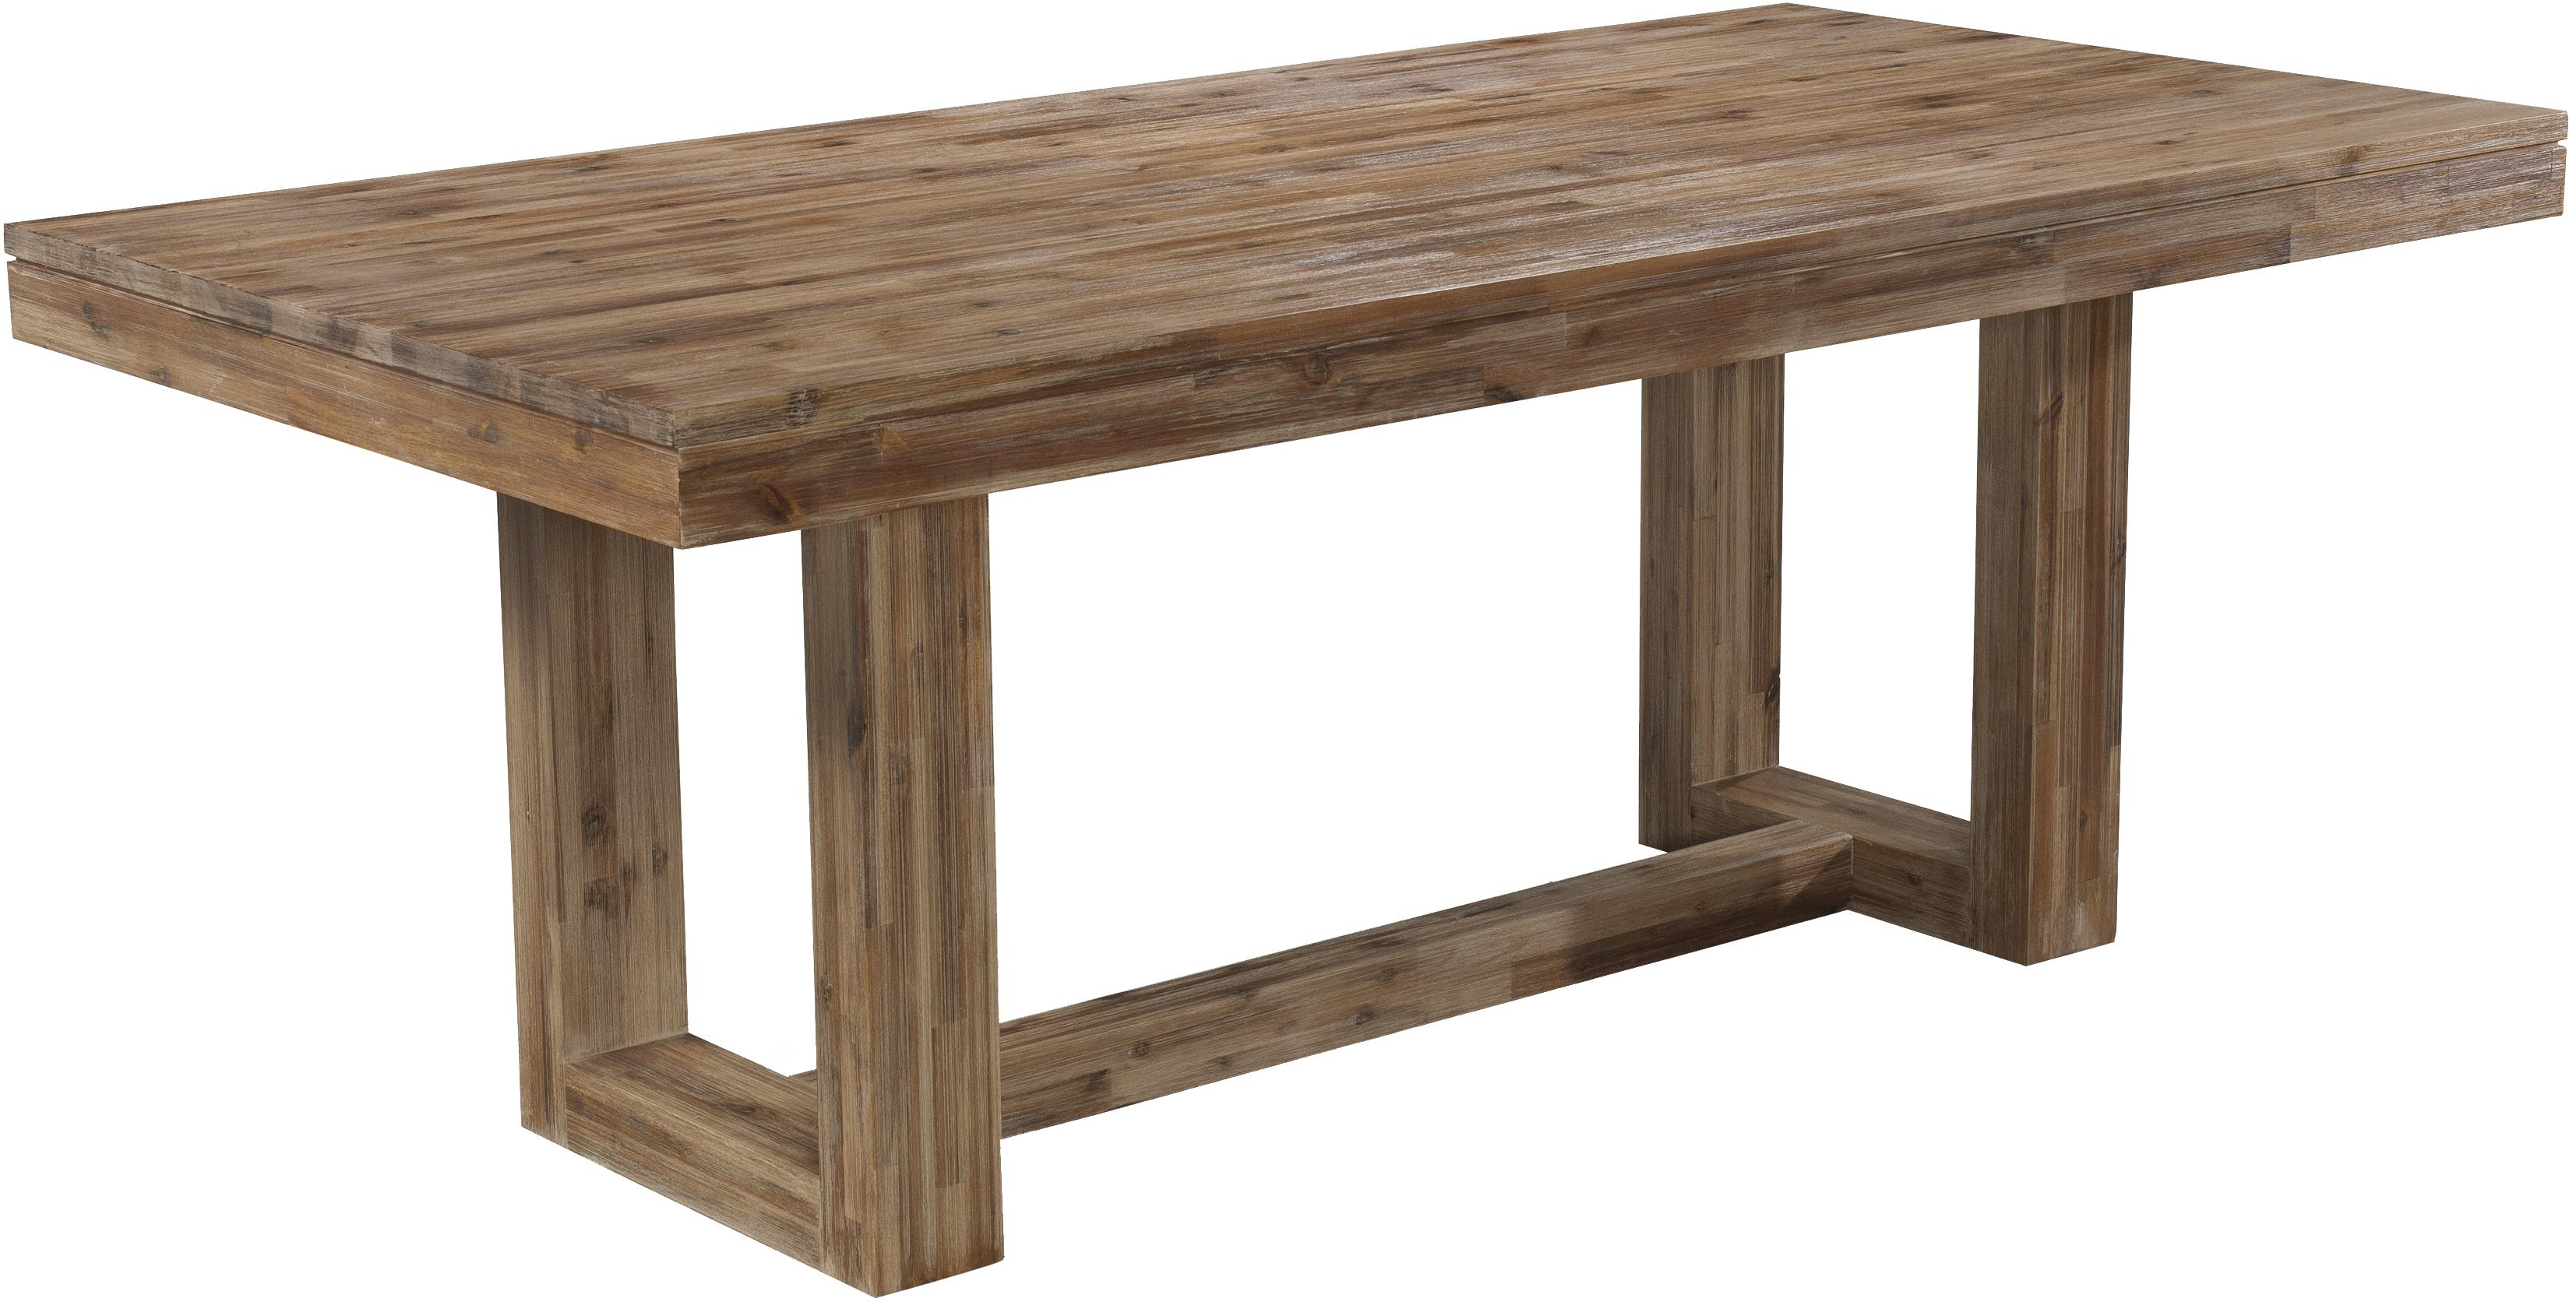 Modern Rectangular Dining Table With Rustic Trestle Base By Cresent Fine Furniture Wolf And